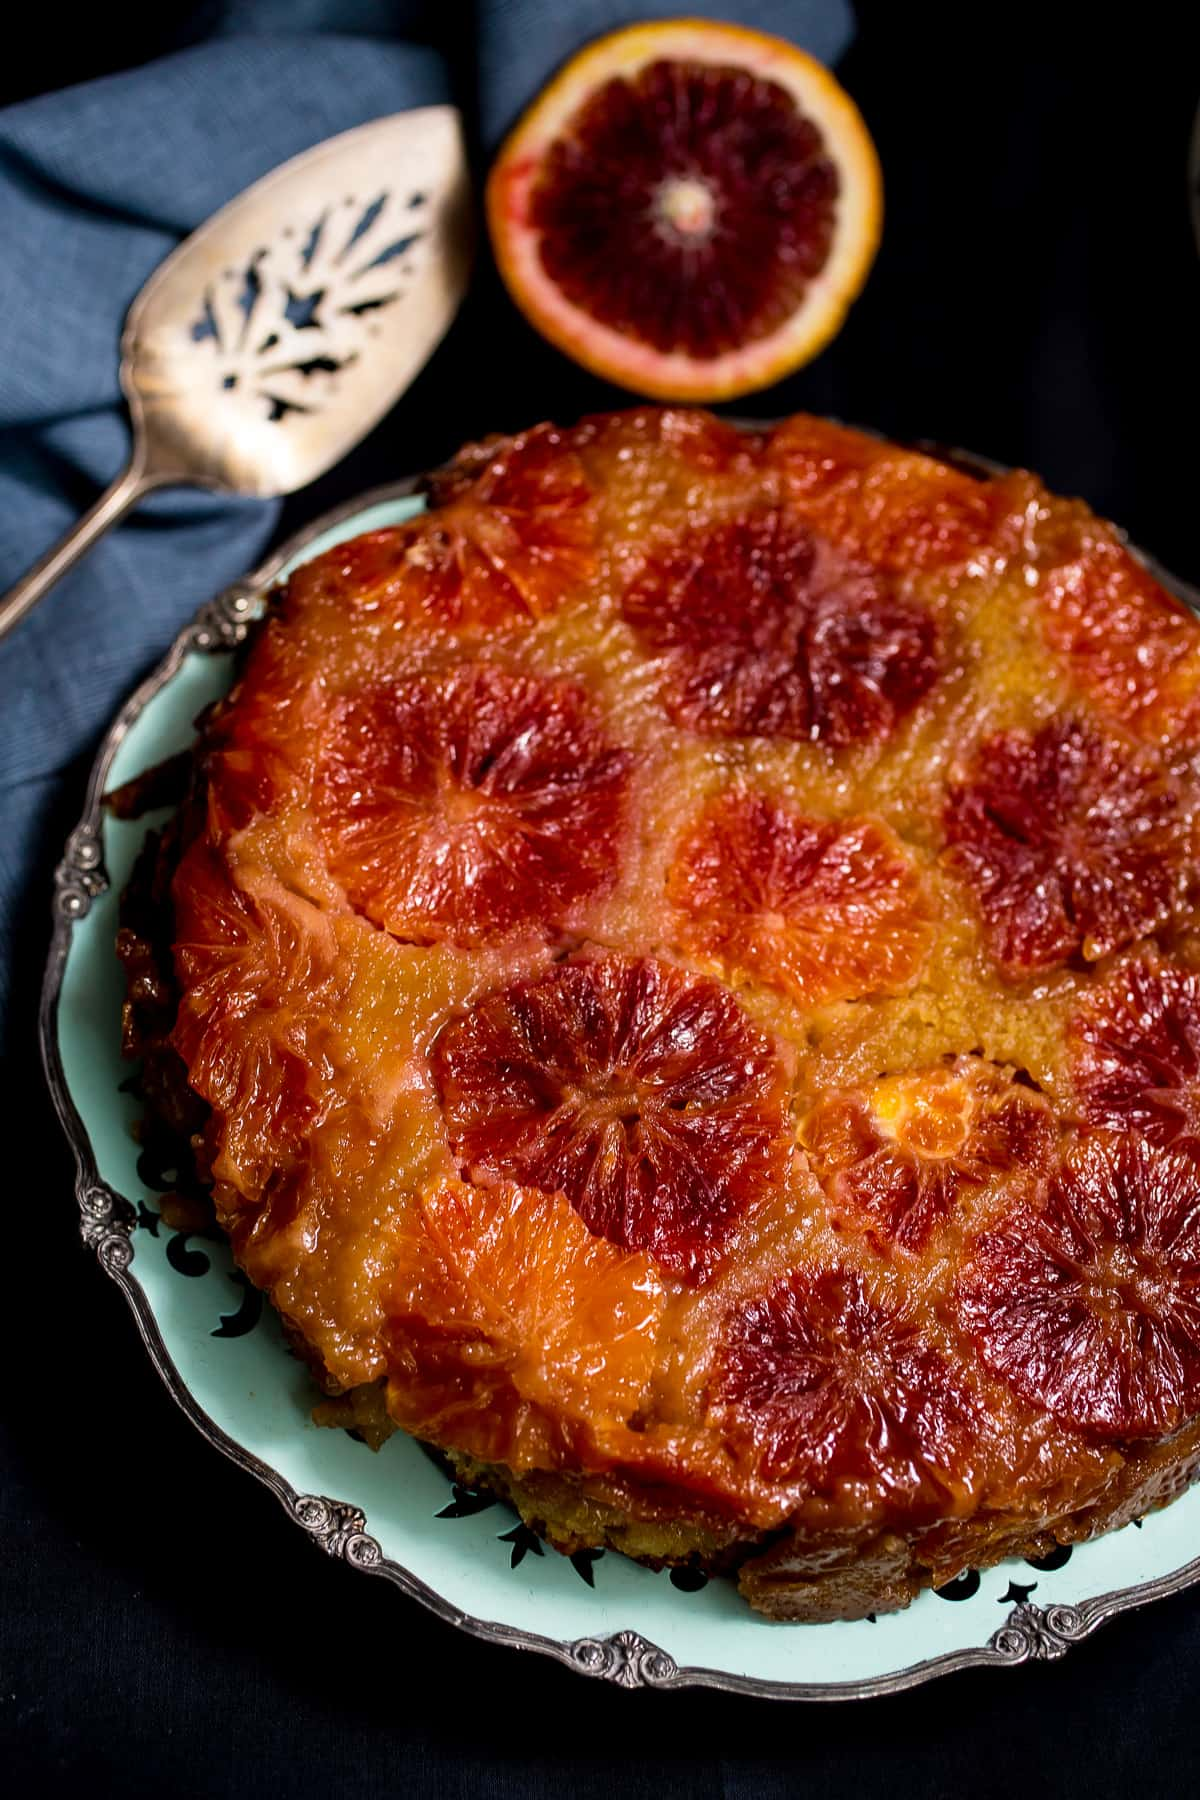 Blood Orange Almond Upside Down Cake The Girl In The